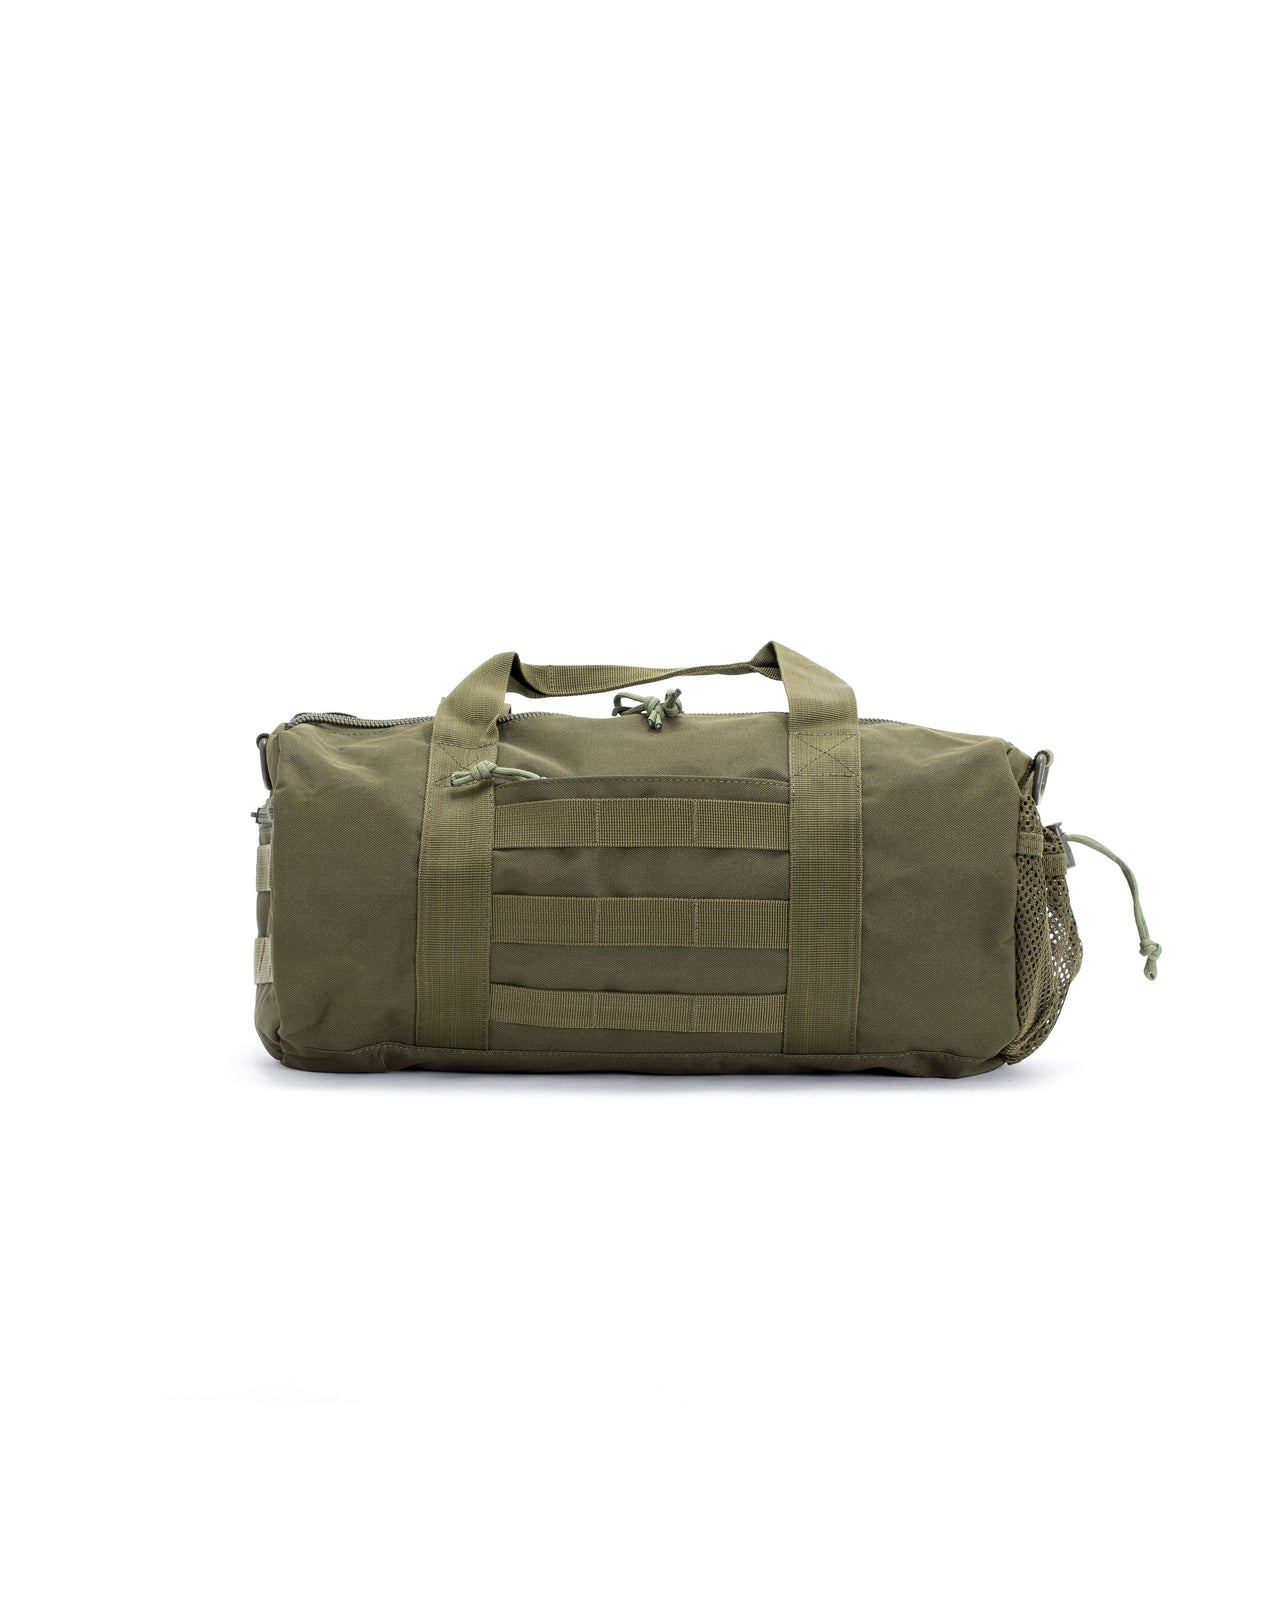 The Duffle Bag - Color: Olive | Green